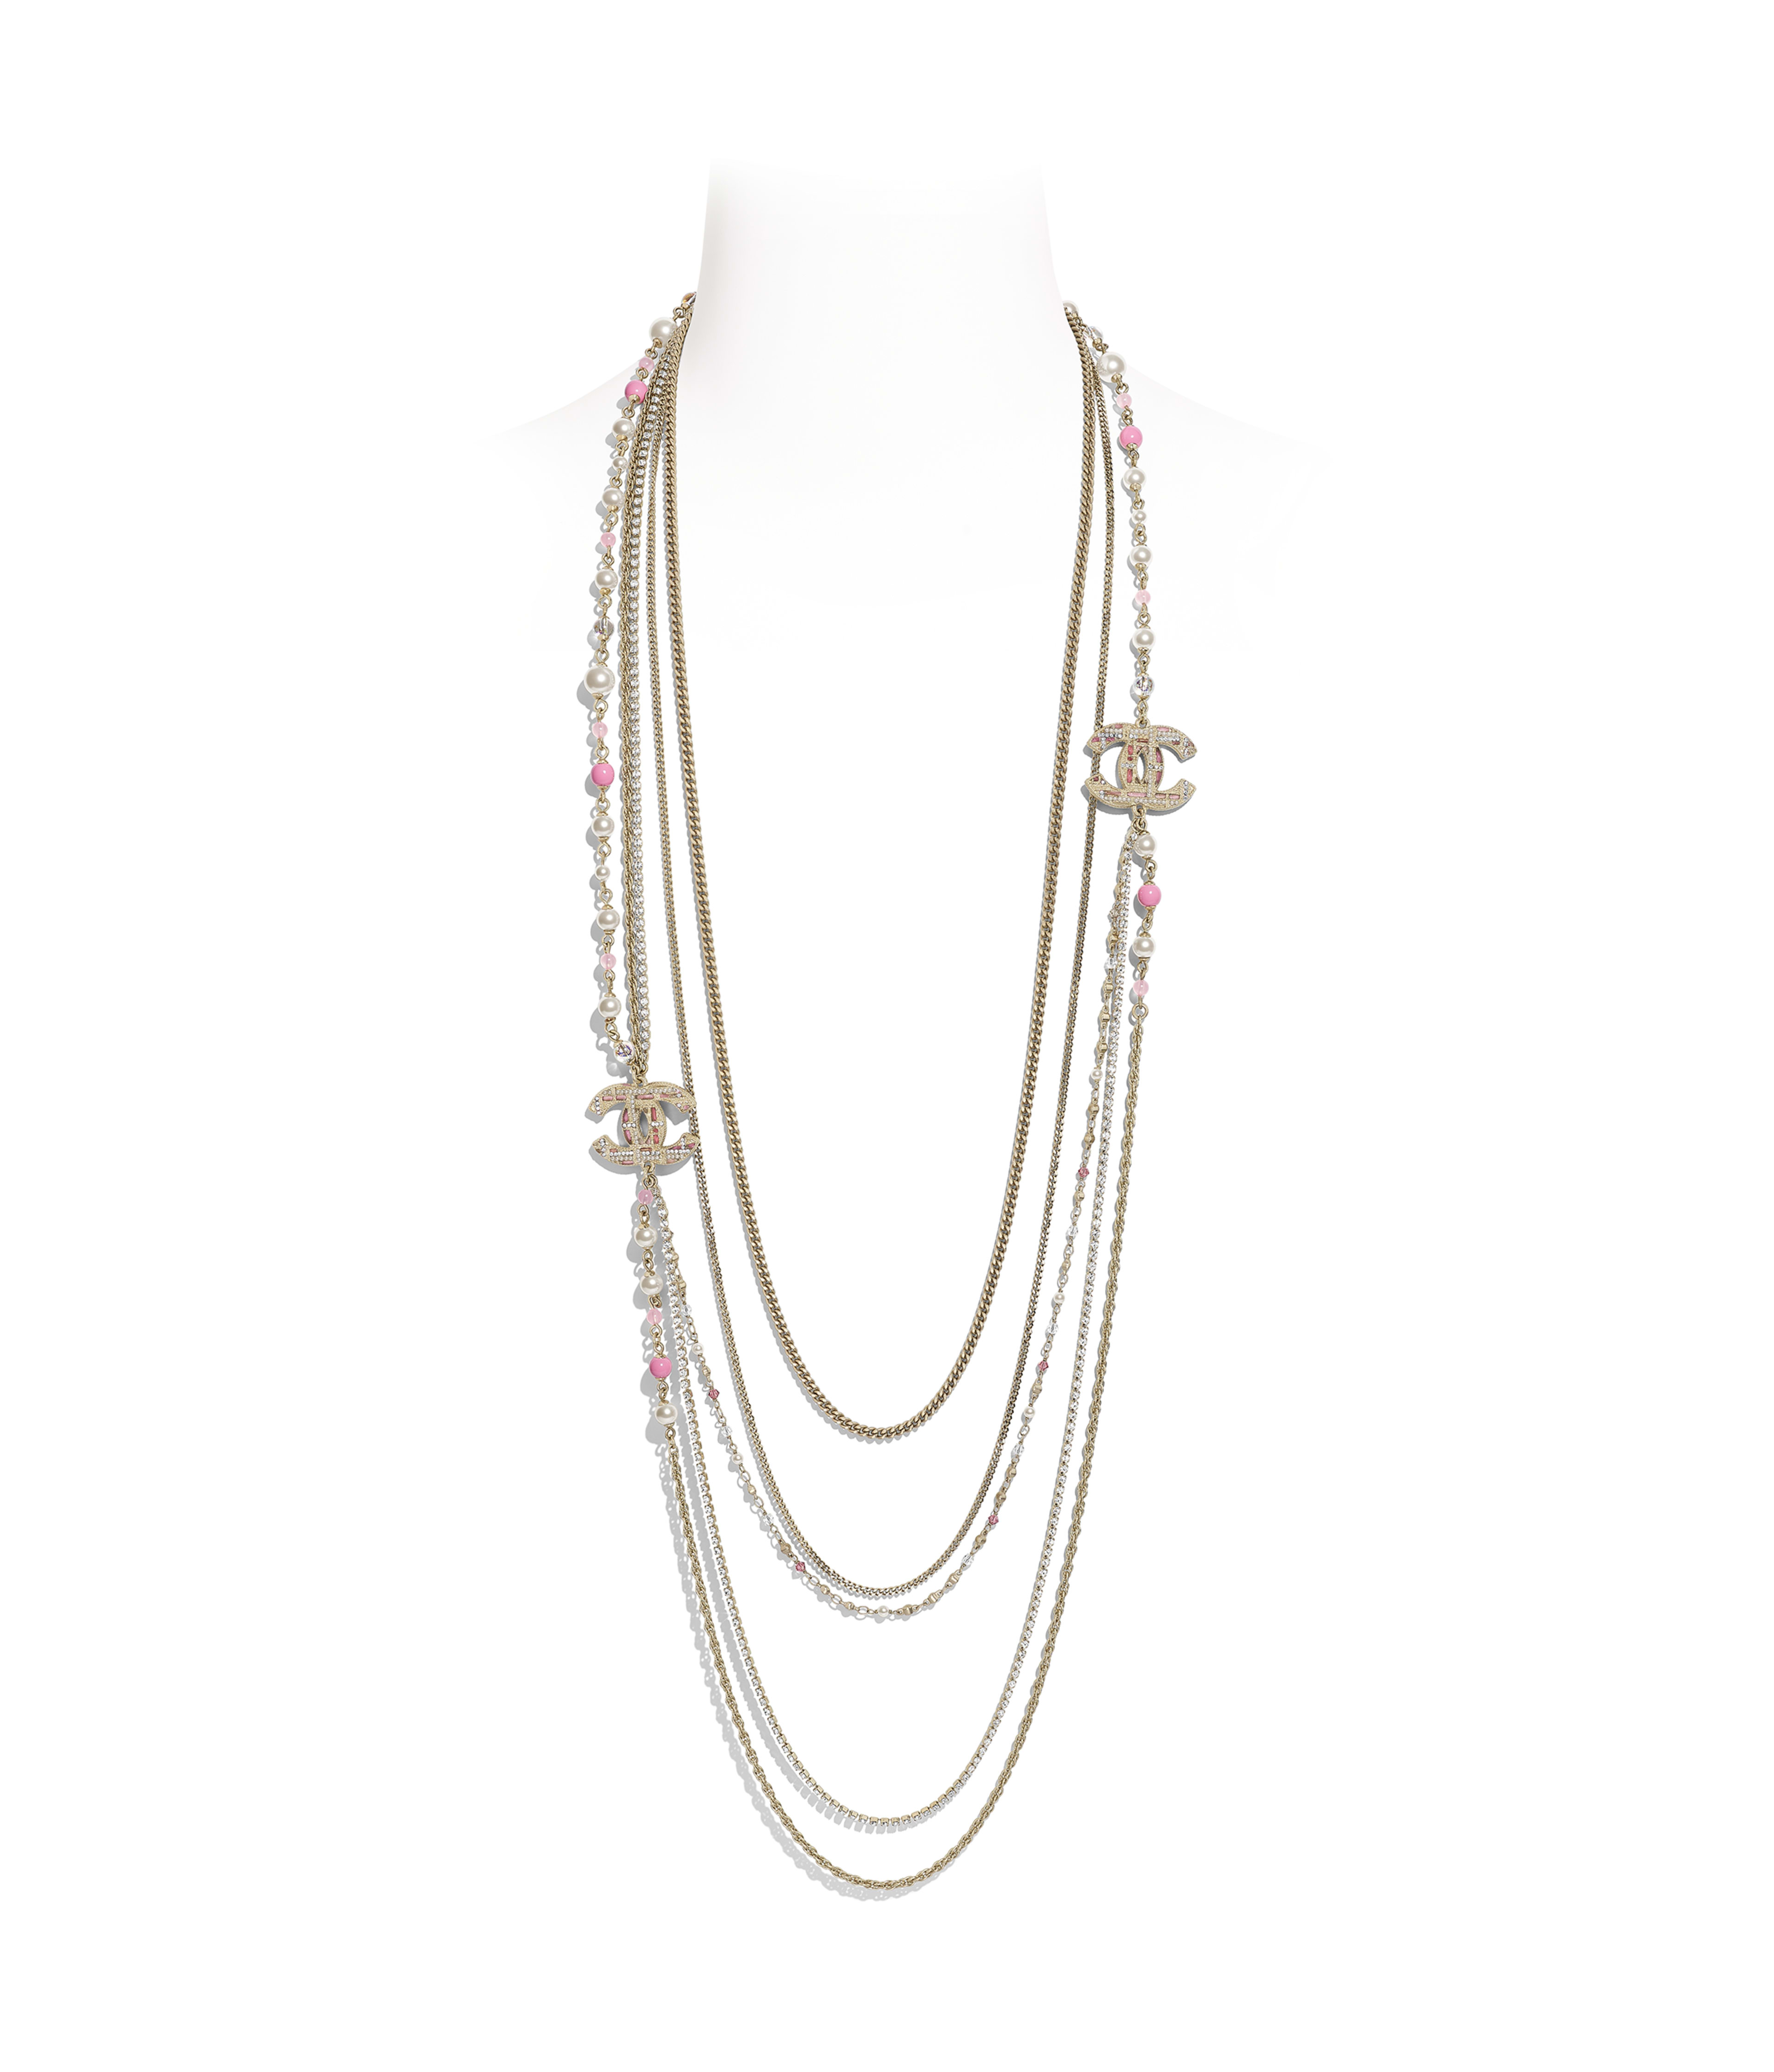 43659f87a4405 Necklaces - Costume jewelry | CHANEL - page 3/4